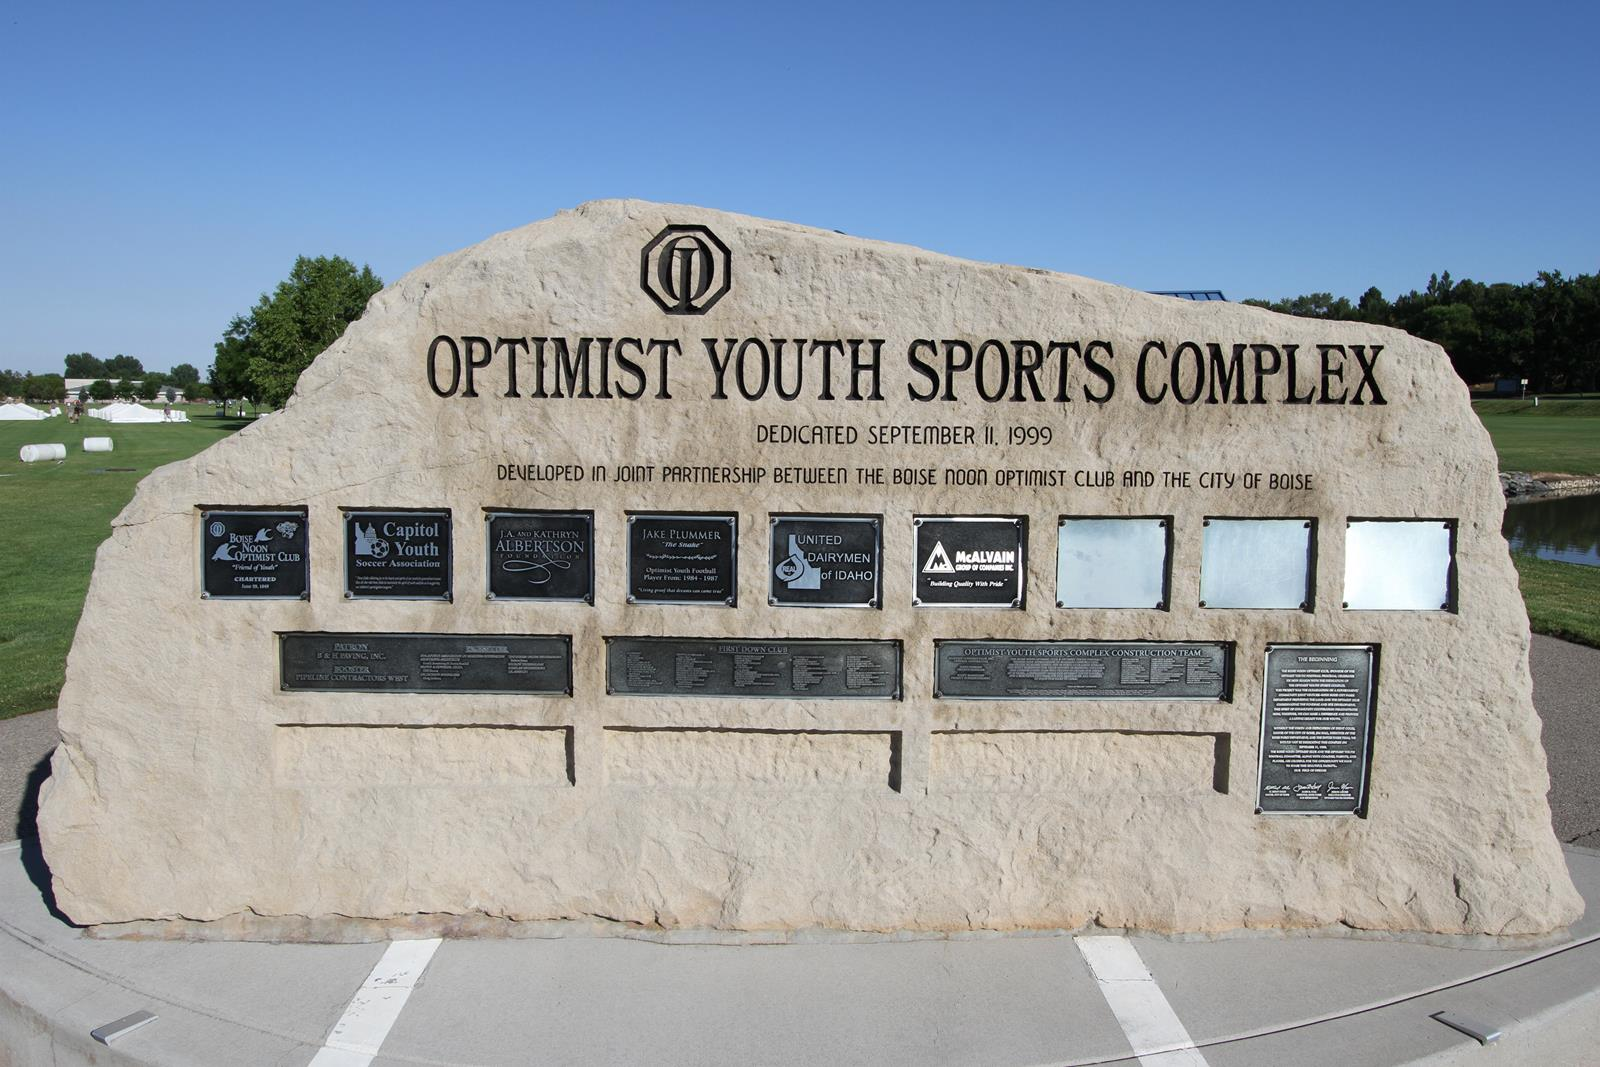 Optimist Youth Sports Complex